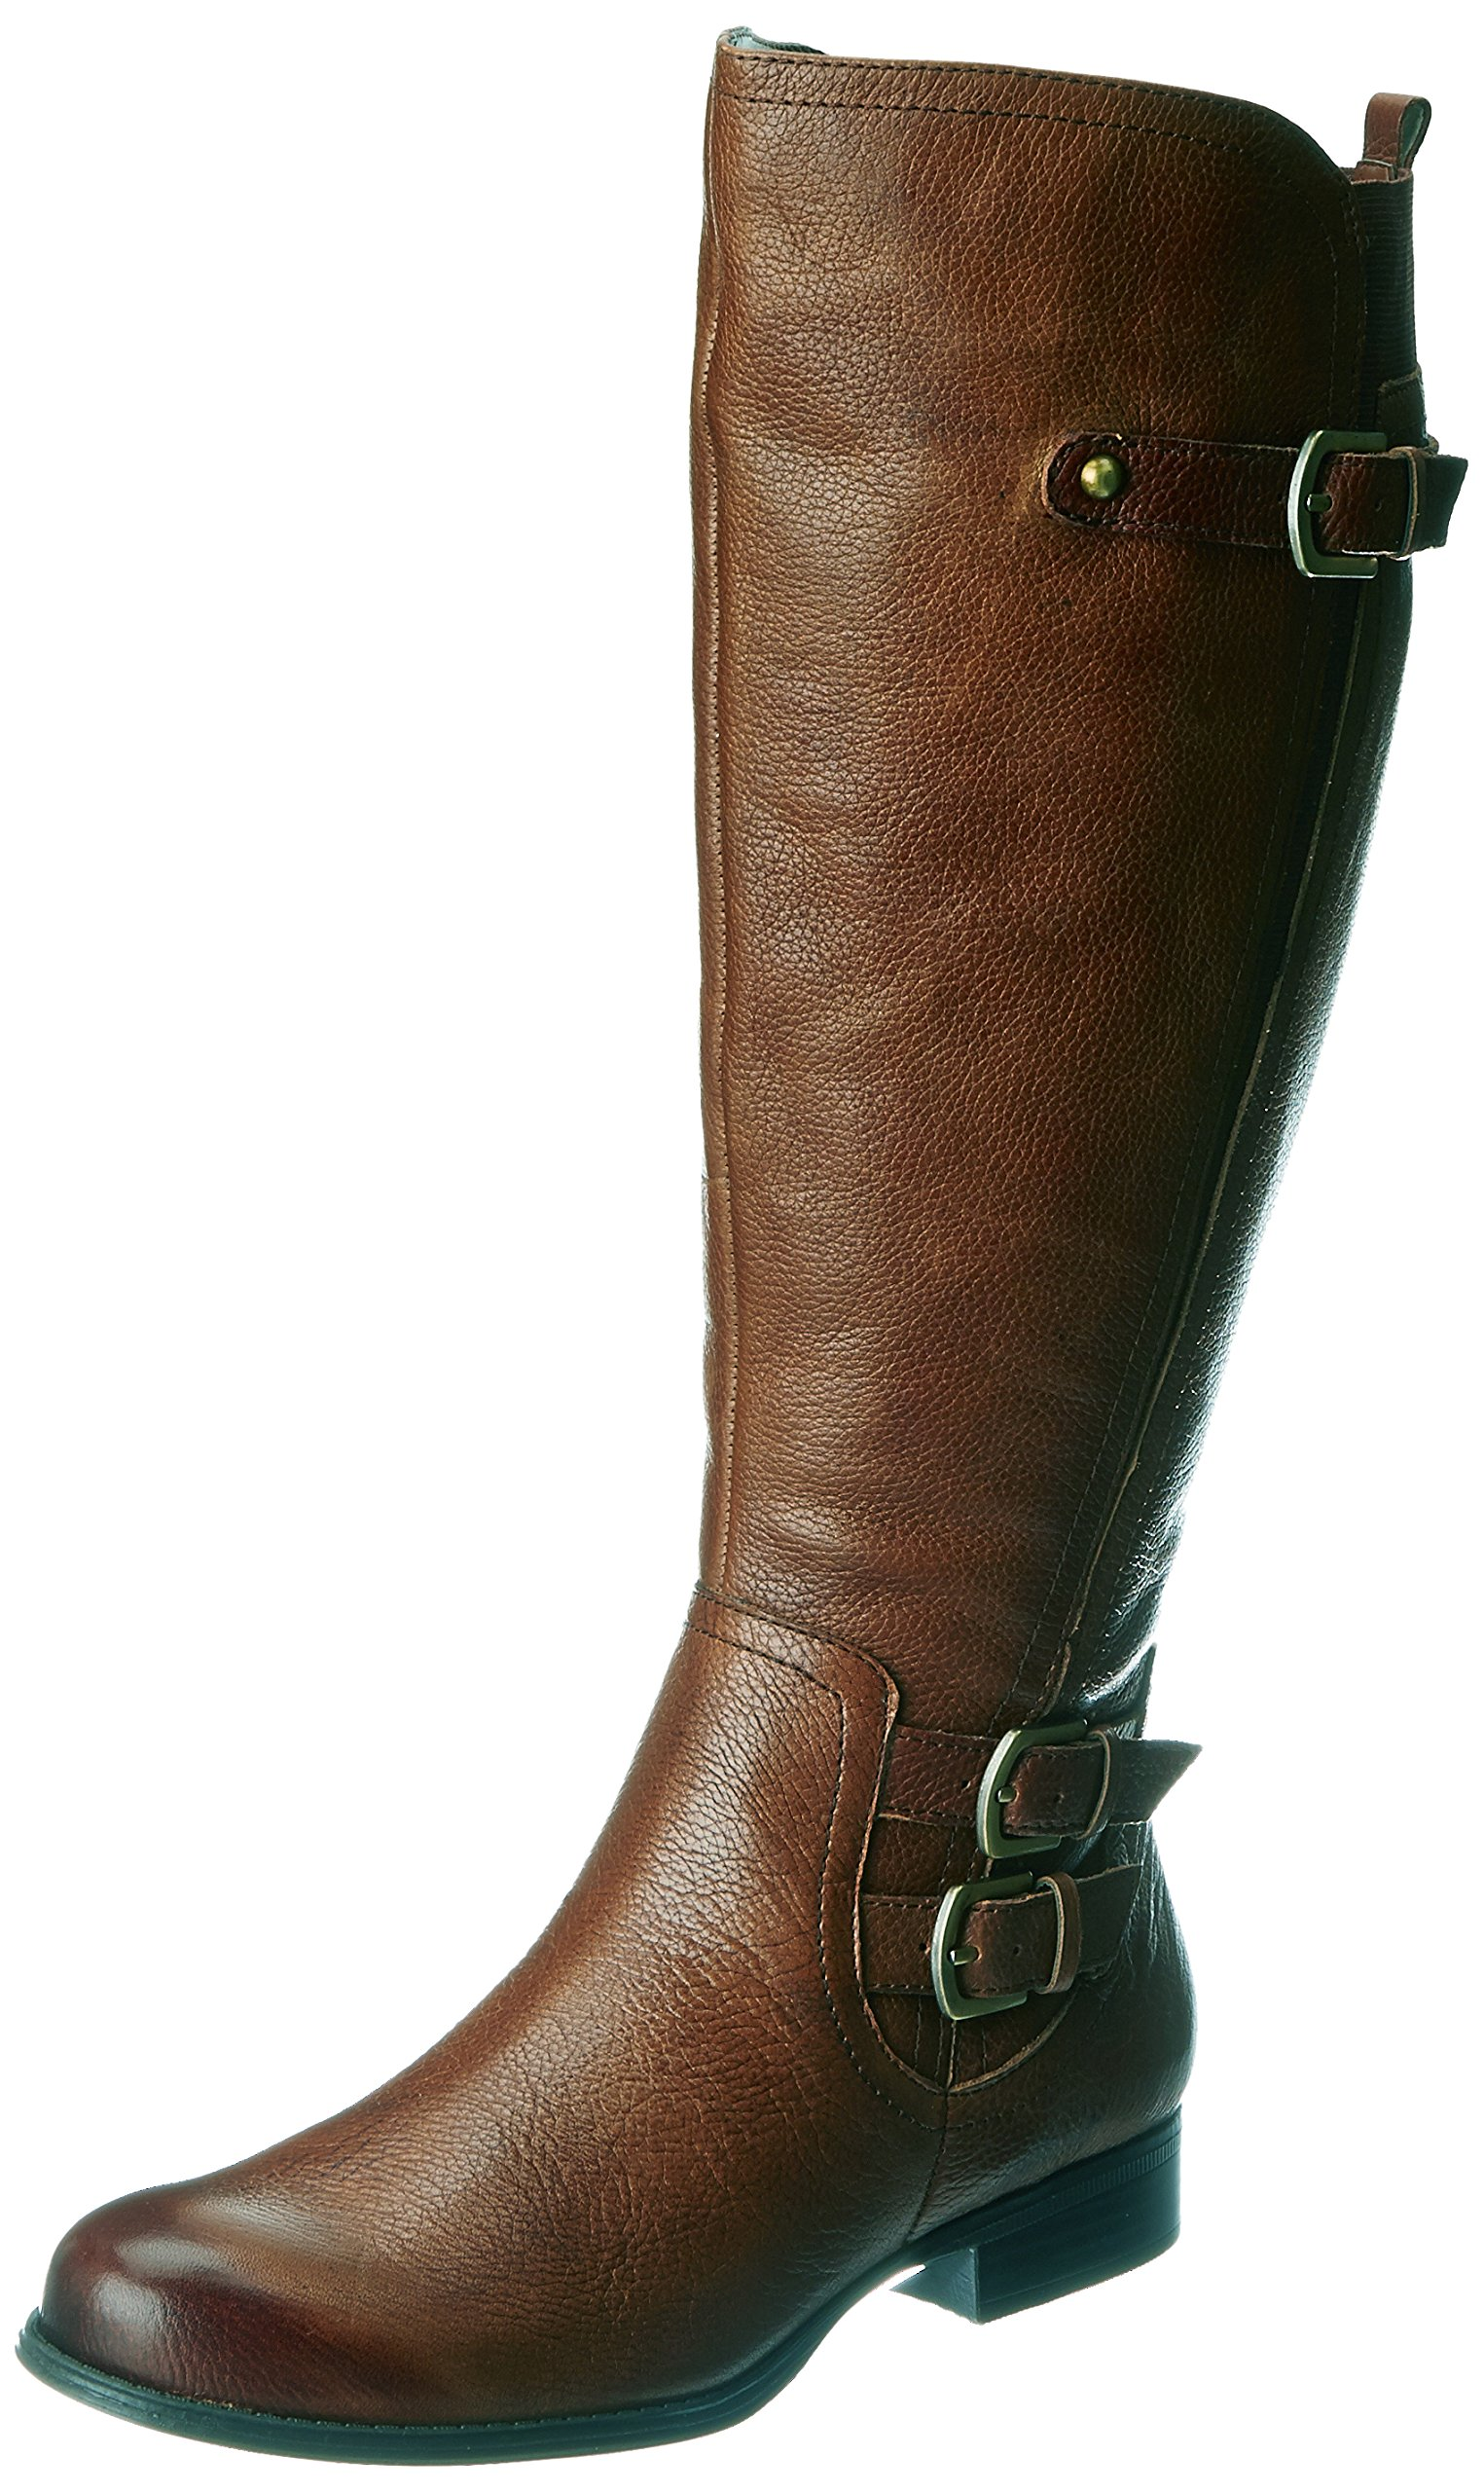 Naturalizer New Brown Shoes Size 4W Knee-High Leather Boots by Naturalizer